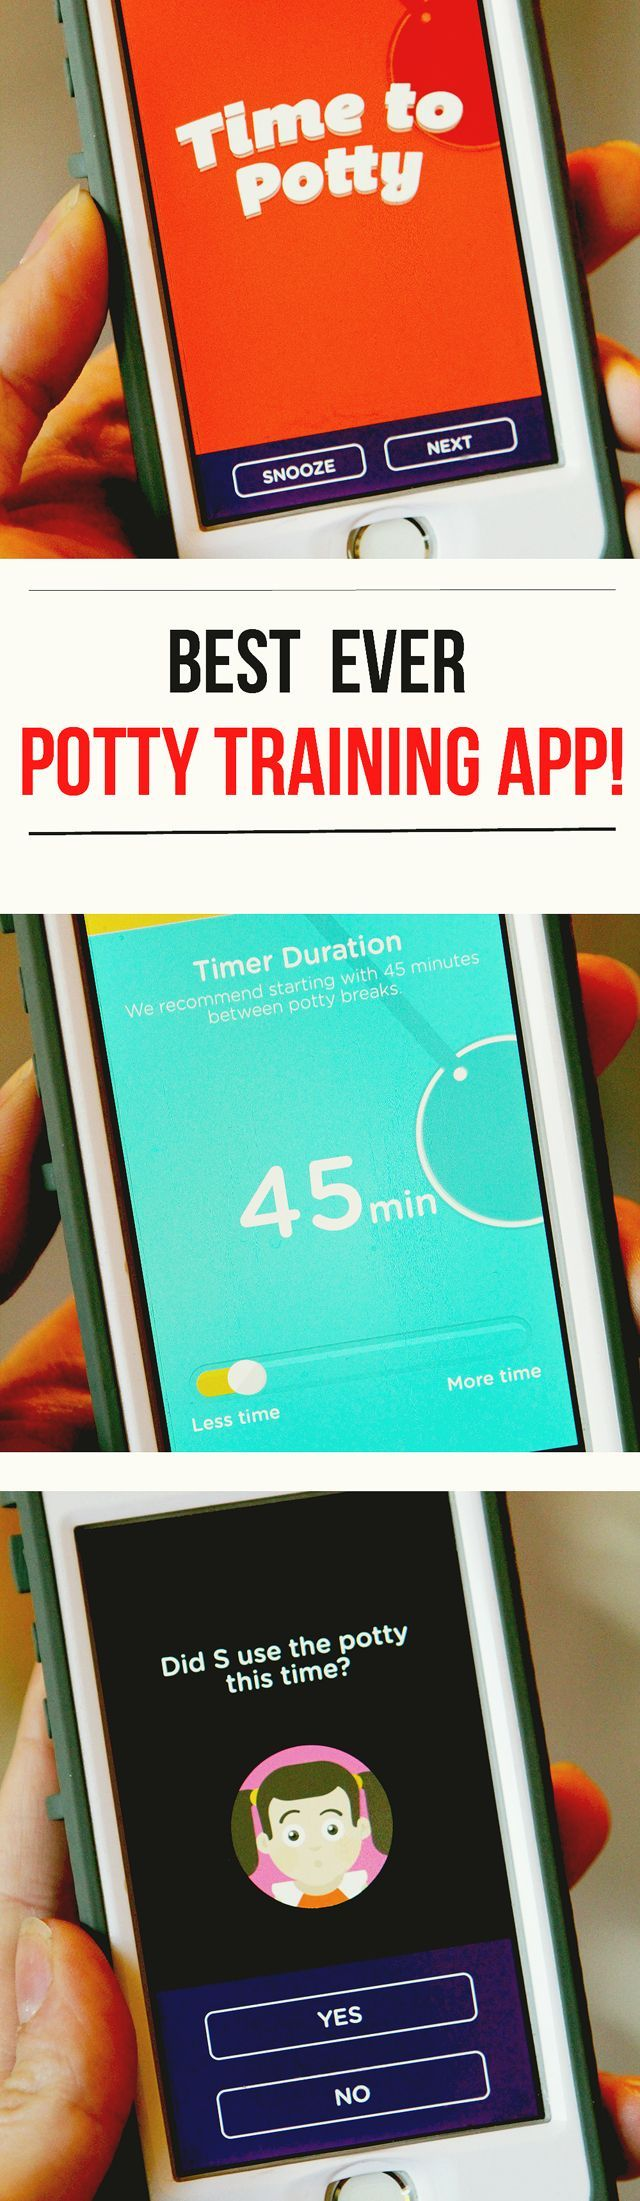 Best Ever Potty Training App